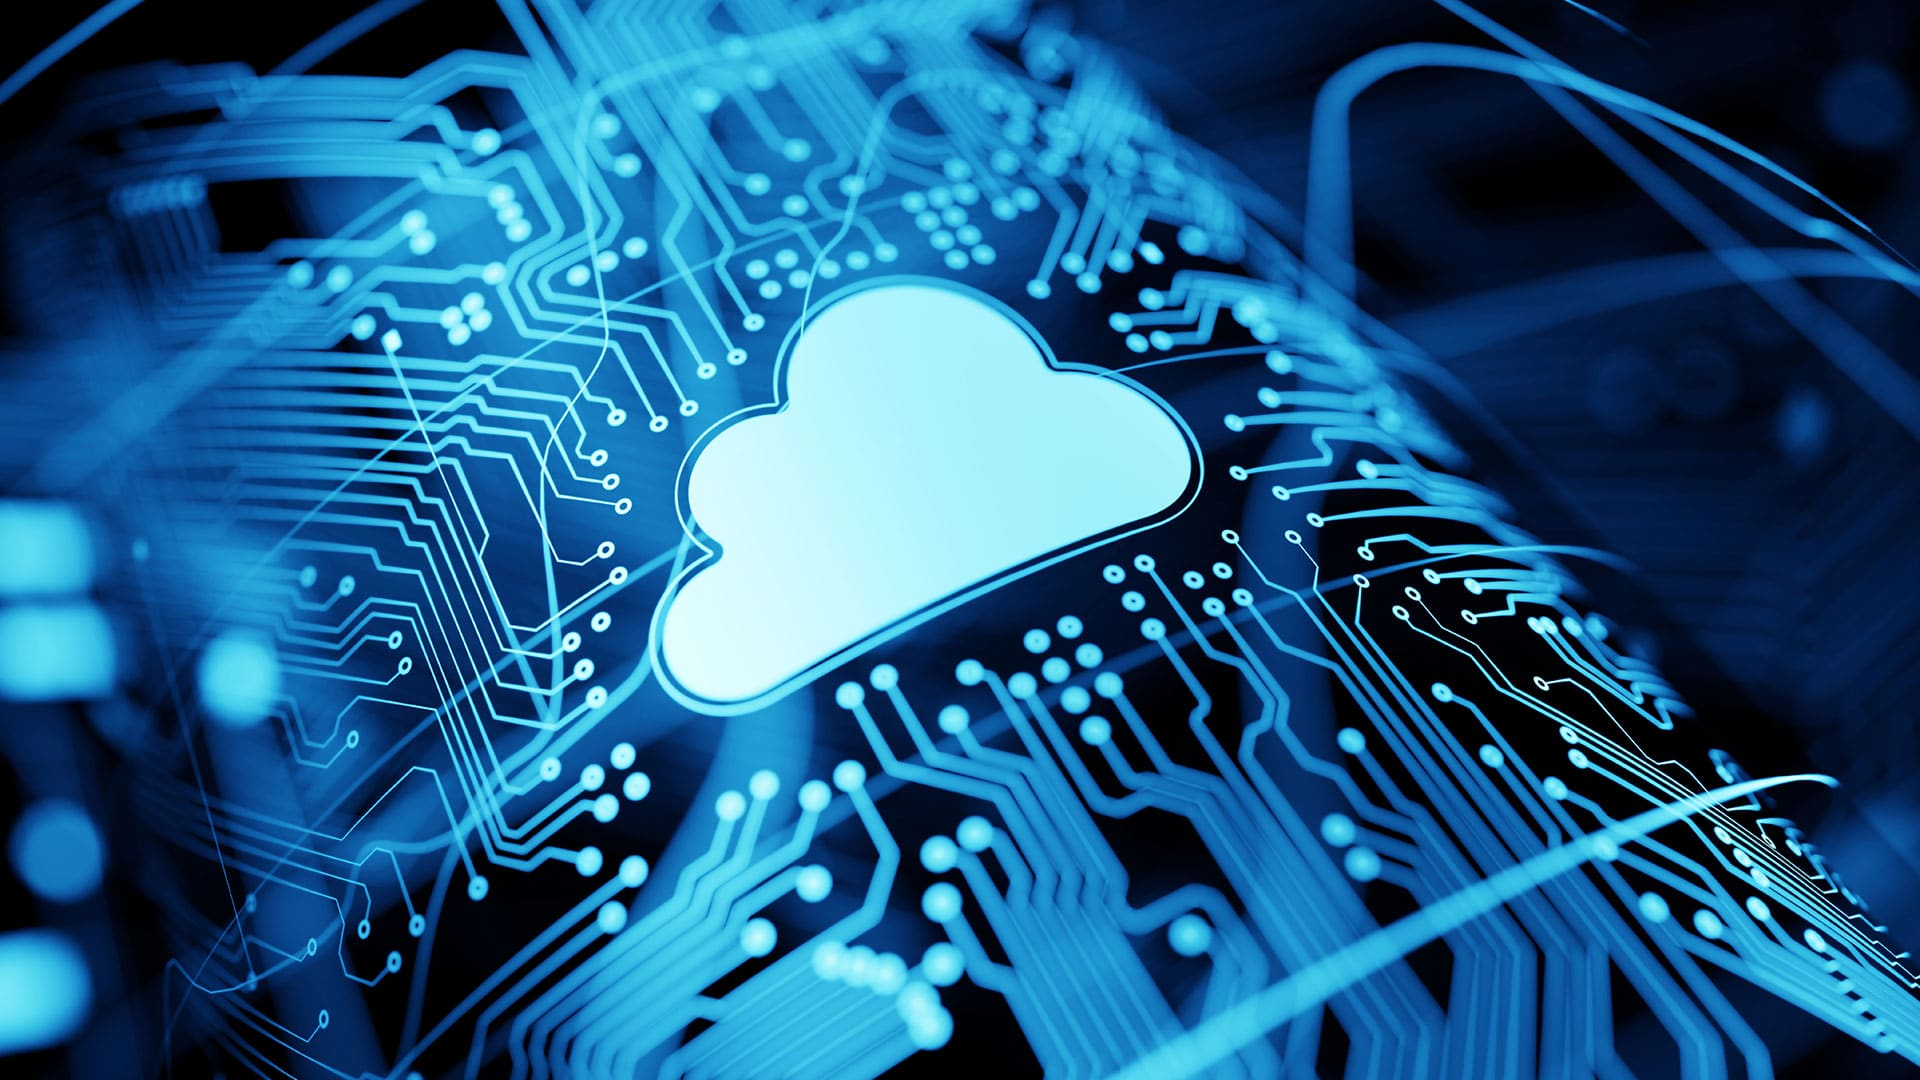 Public Cloud Services SaaS Segment To Experience Almost 20% CAGR From 2020-2022